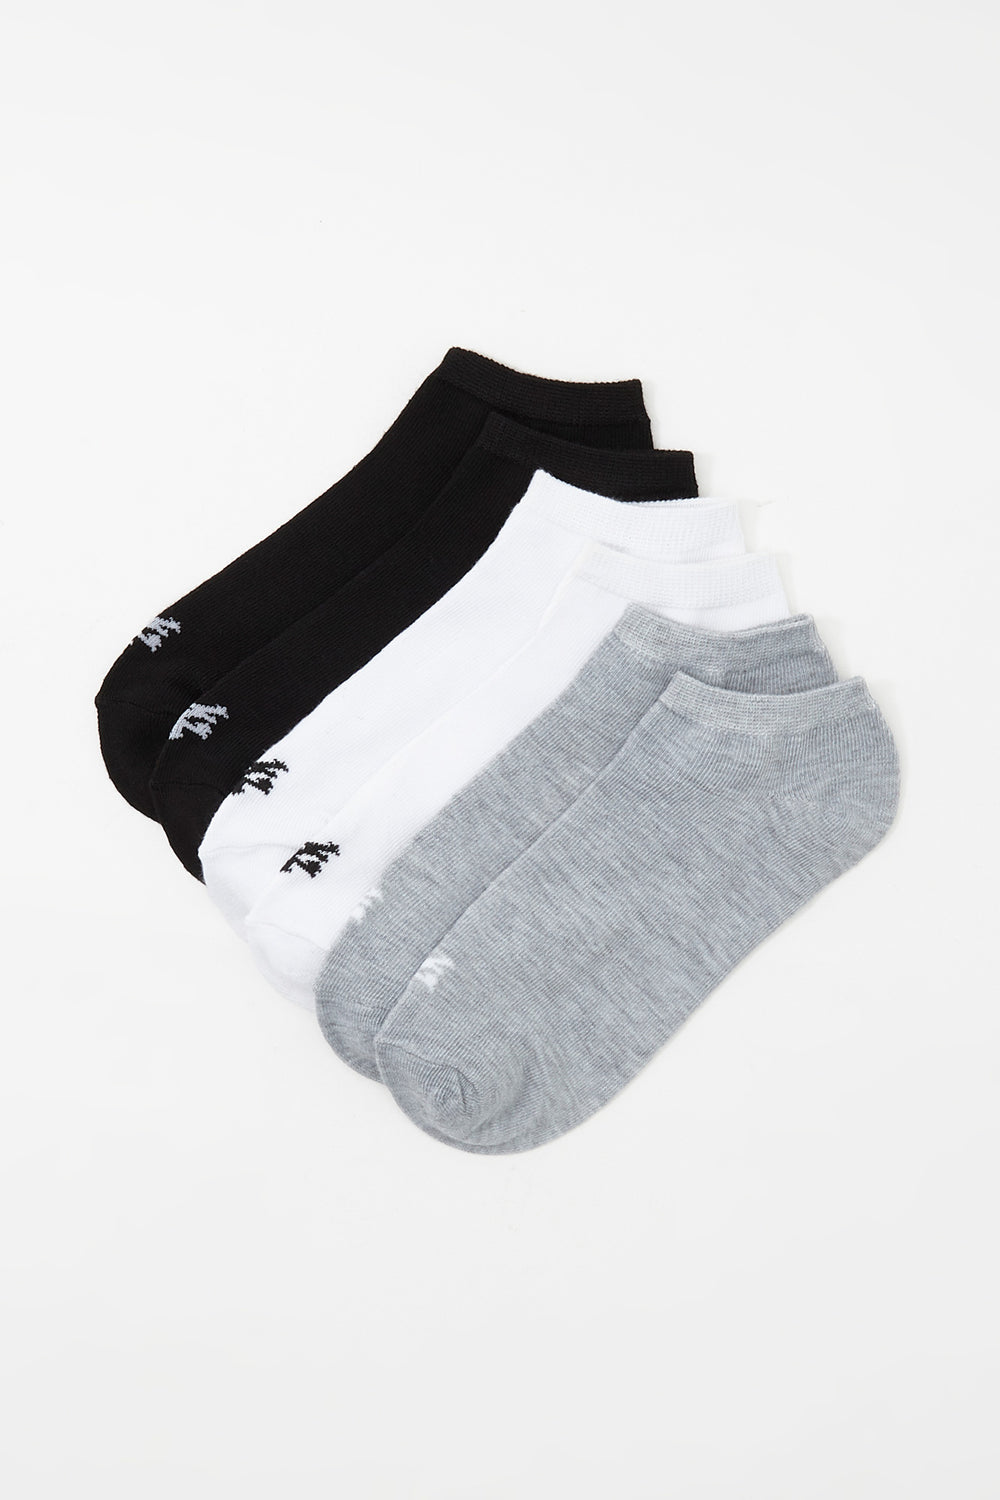 Zoo York Mens 6-Pack Ankle Socks Black with White